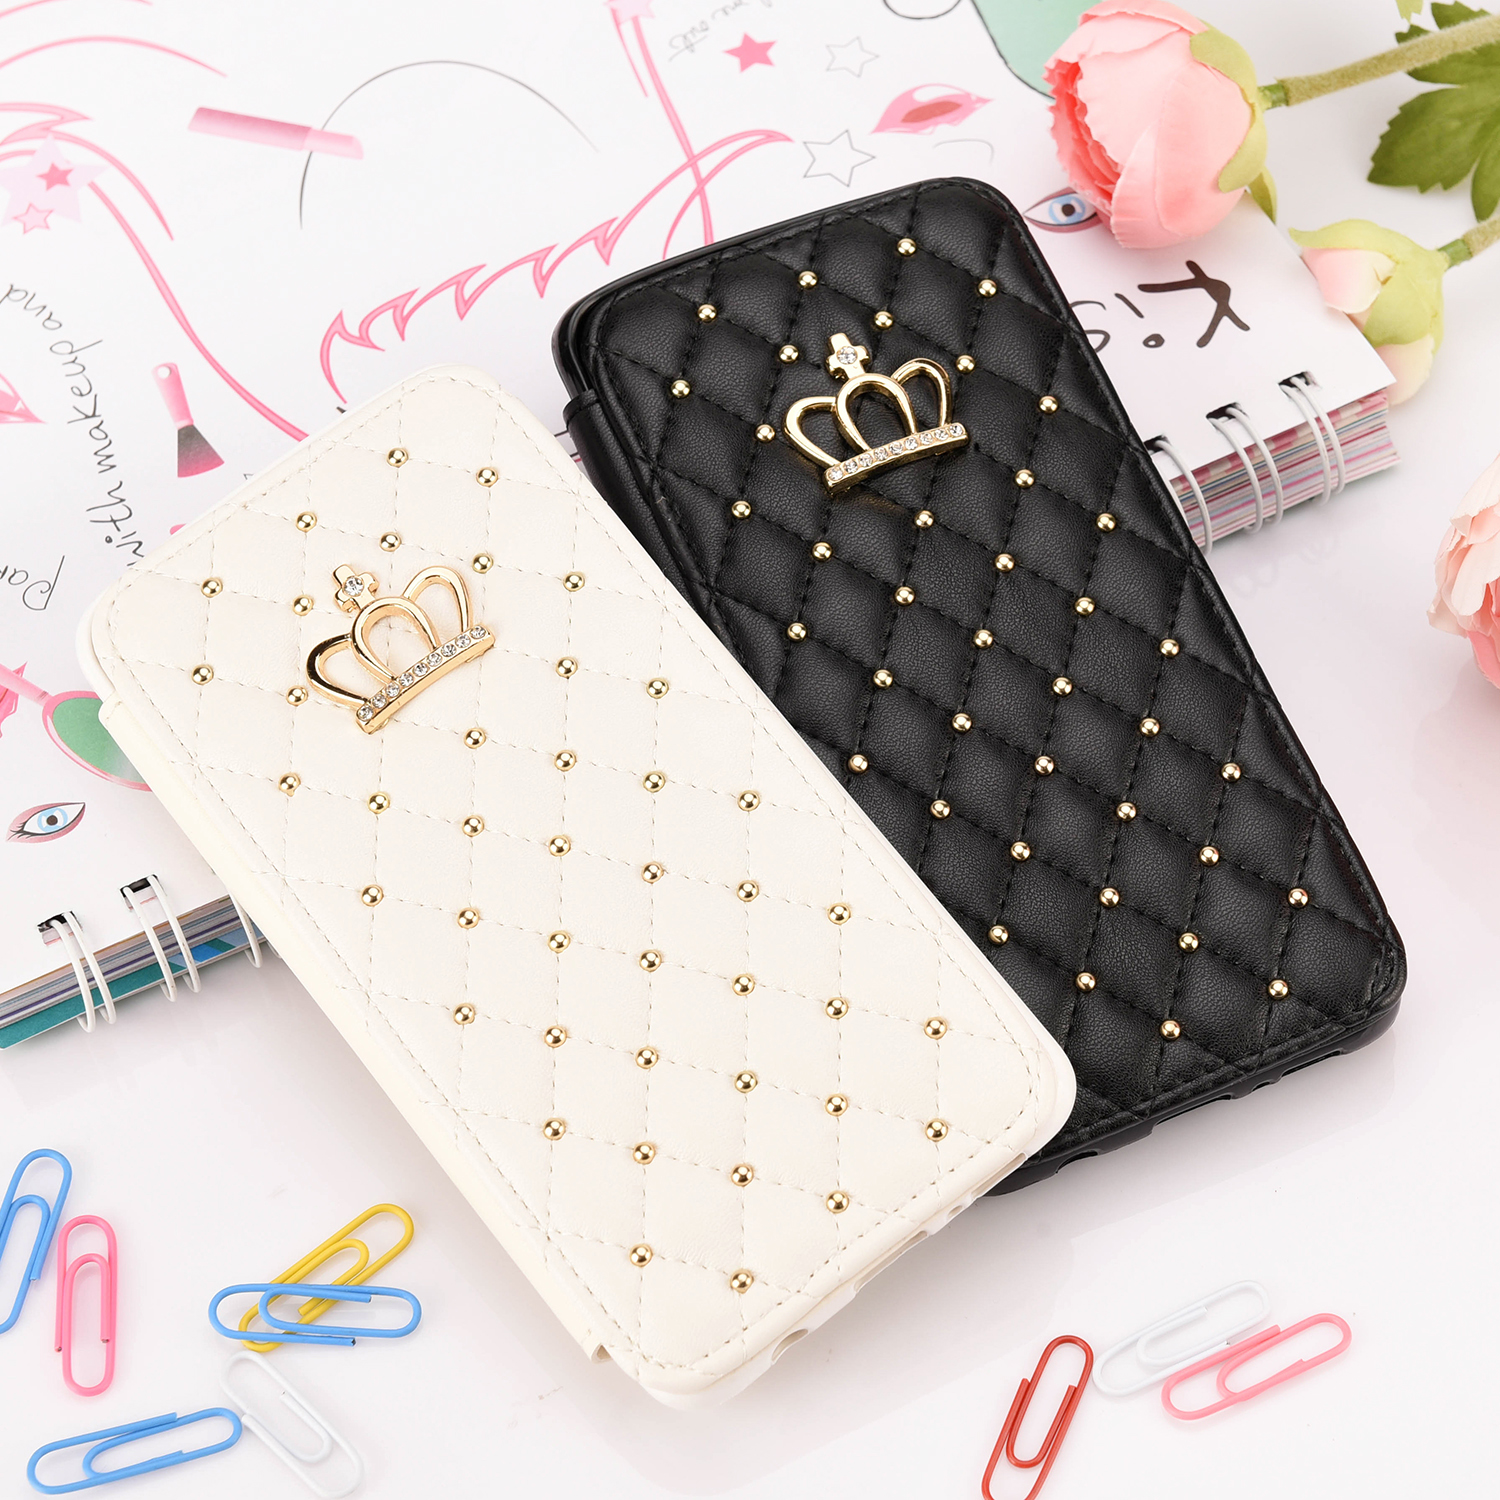 Crown For iPhone 11 12 Pro 6 6S 7 8 Plus X XR XS Max SE Case Wallet Leather Flip Stand Fashion Cases Cover Mobile Phone Bag